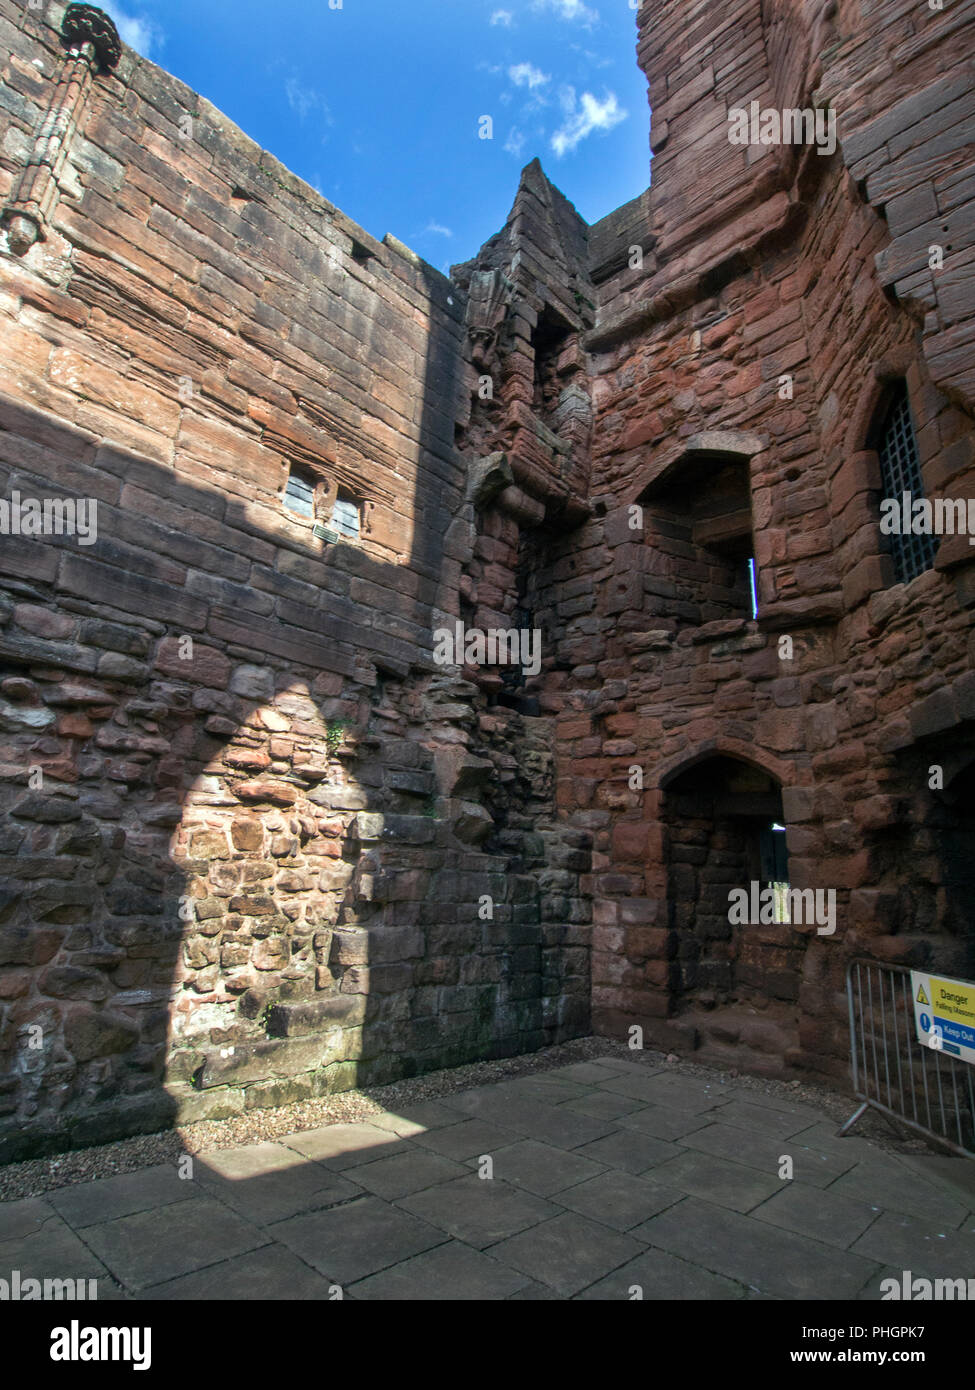 SOUTH LANARKSHIRE, SCOTLAND- AUGUST 31st 2018: The chapel in Bothwell Castle. - Stock Image